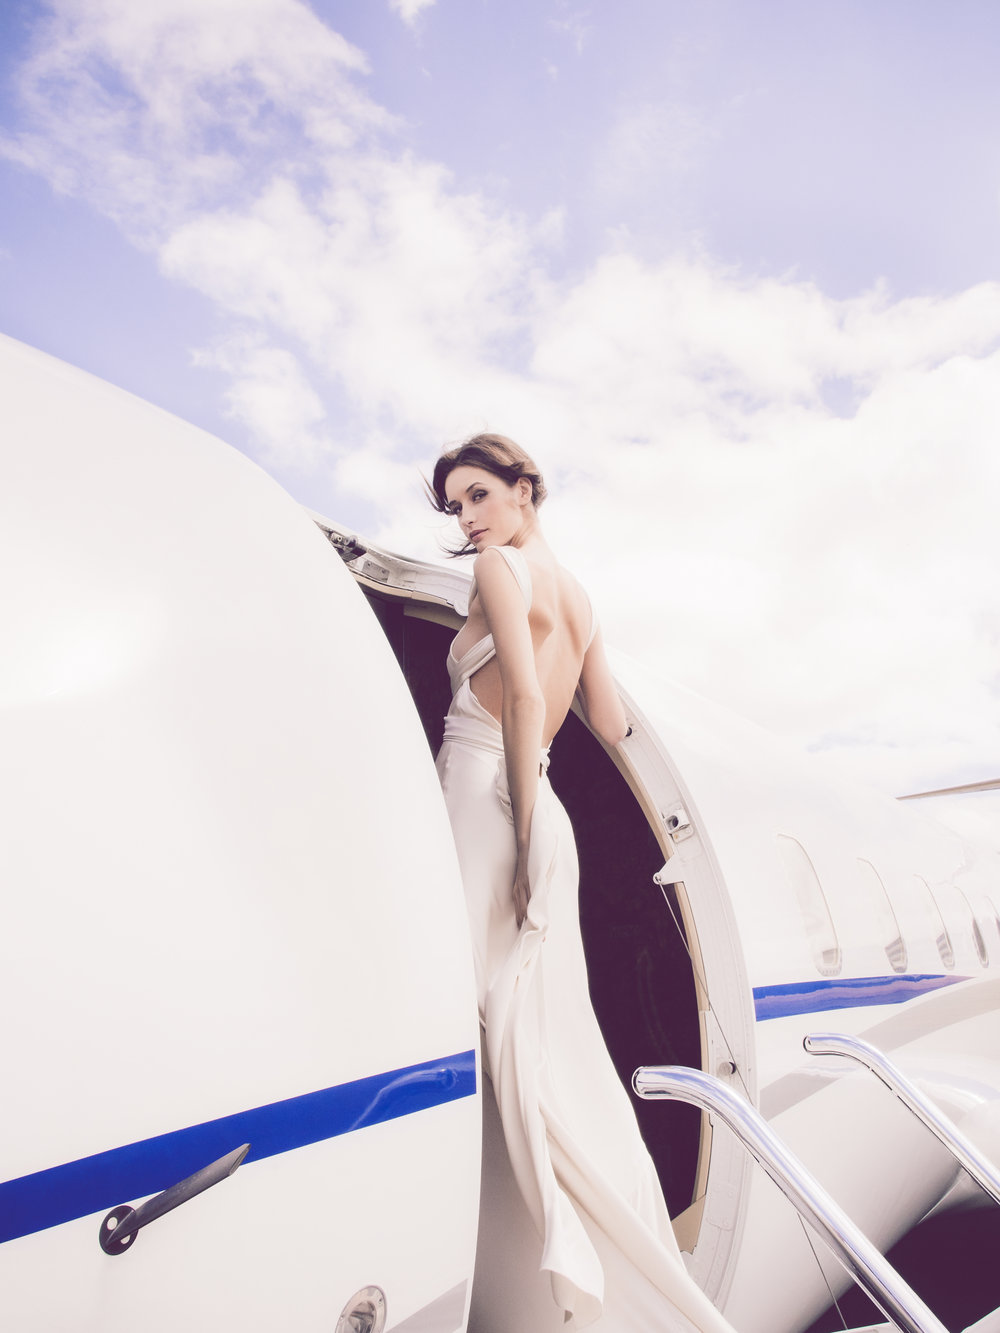 Olympus OM-D E-M5 12mm f/2.0 Lens Wide Angle Aviator By Tag Farnborough Amanda Wakeley Bridal Model Private Jet